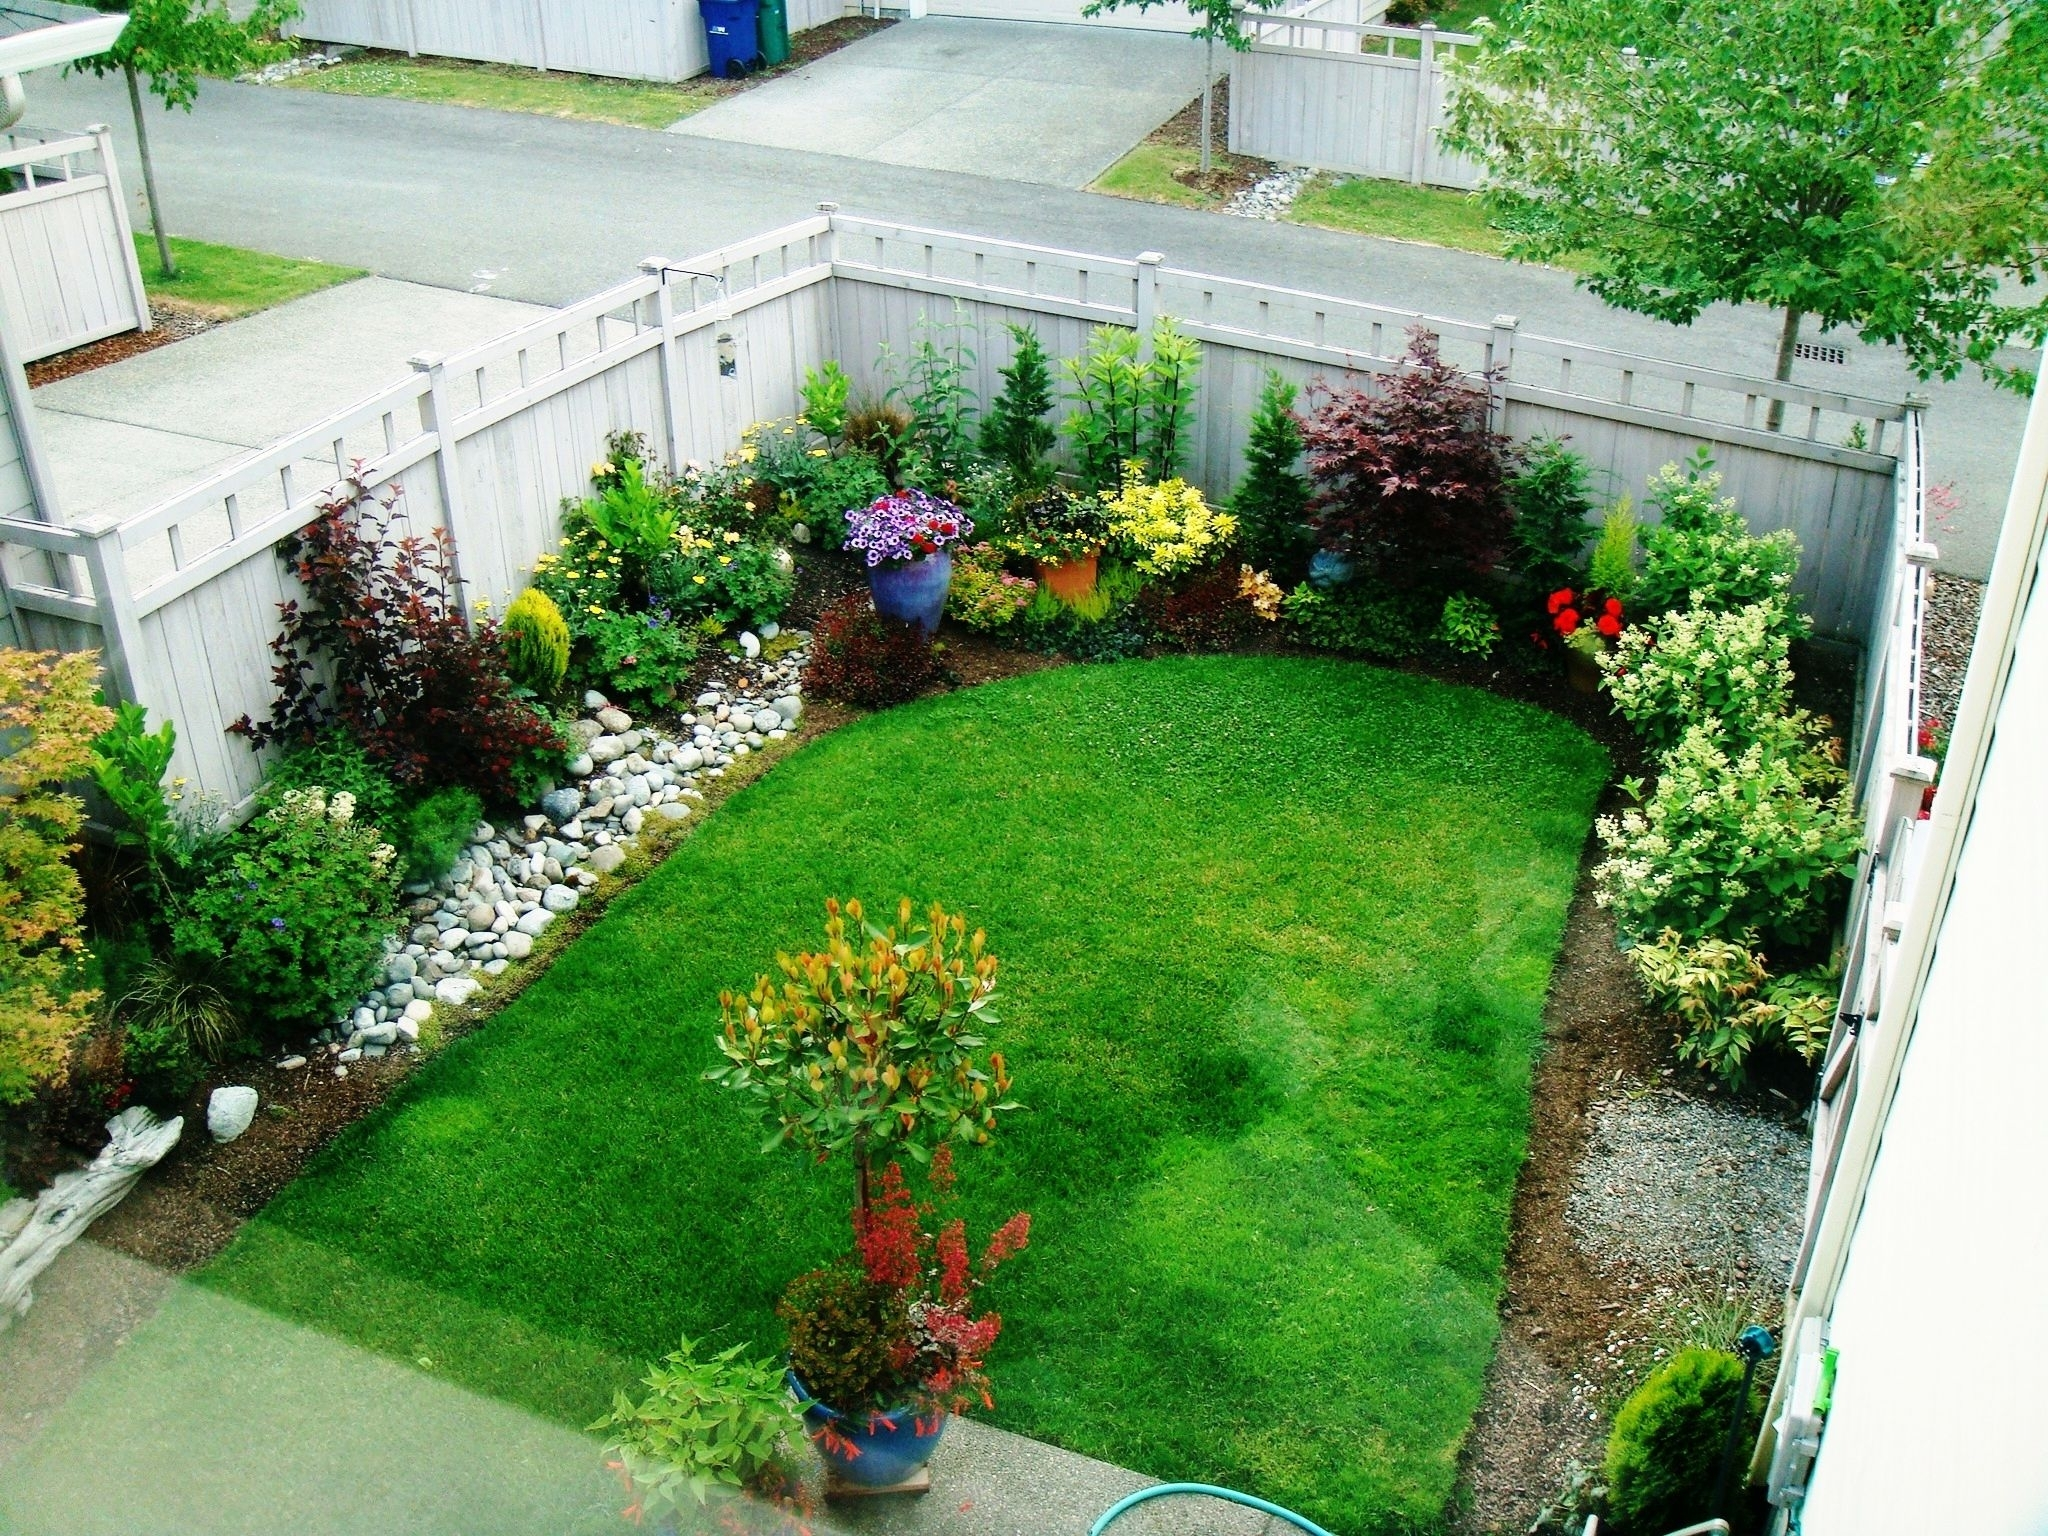 Is Your Yard Or Garden Small On Space? Get Big Tips And Ideas On pertaining to Best Layout For Garden Lake Apartments Design Ideas